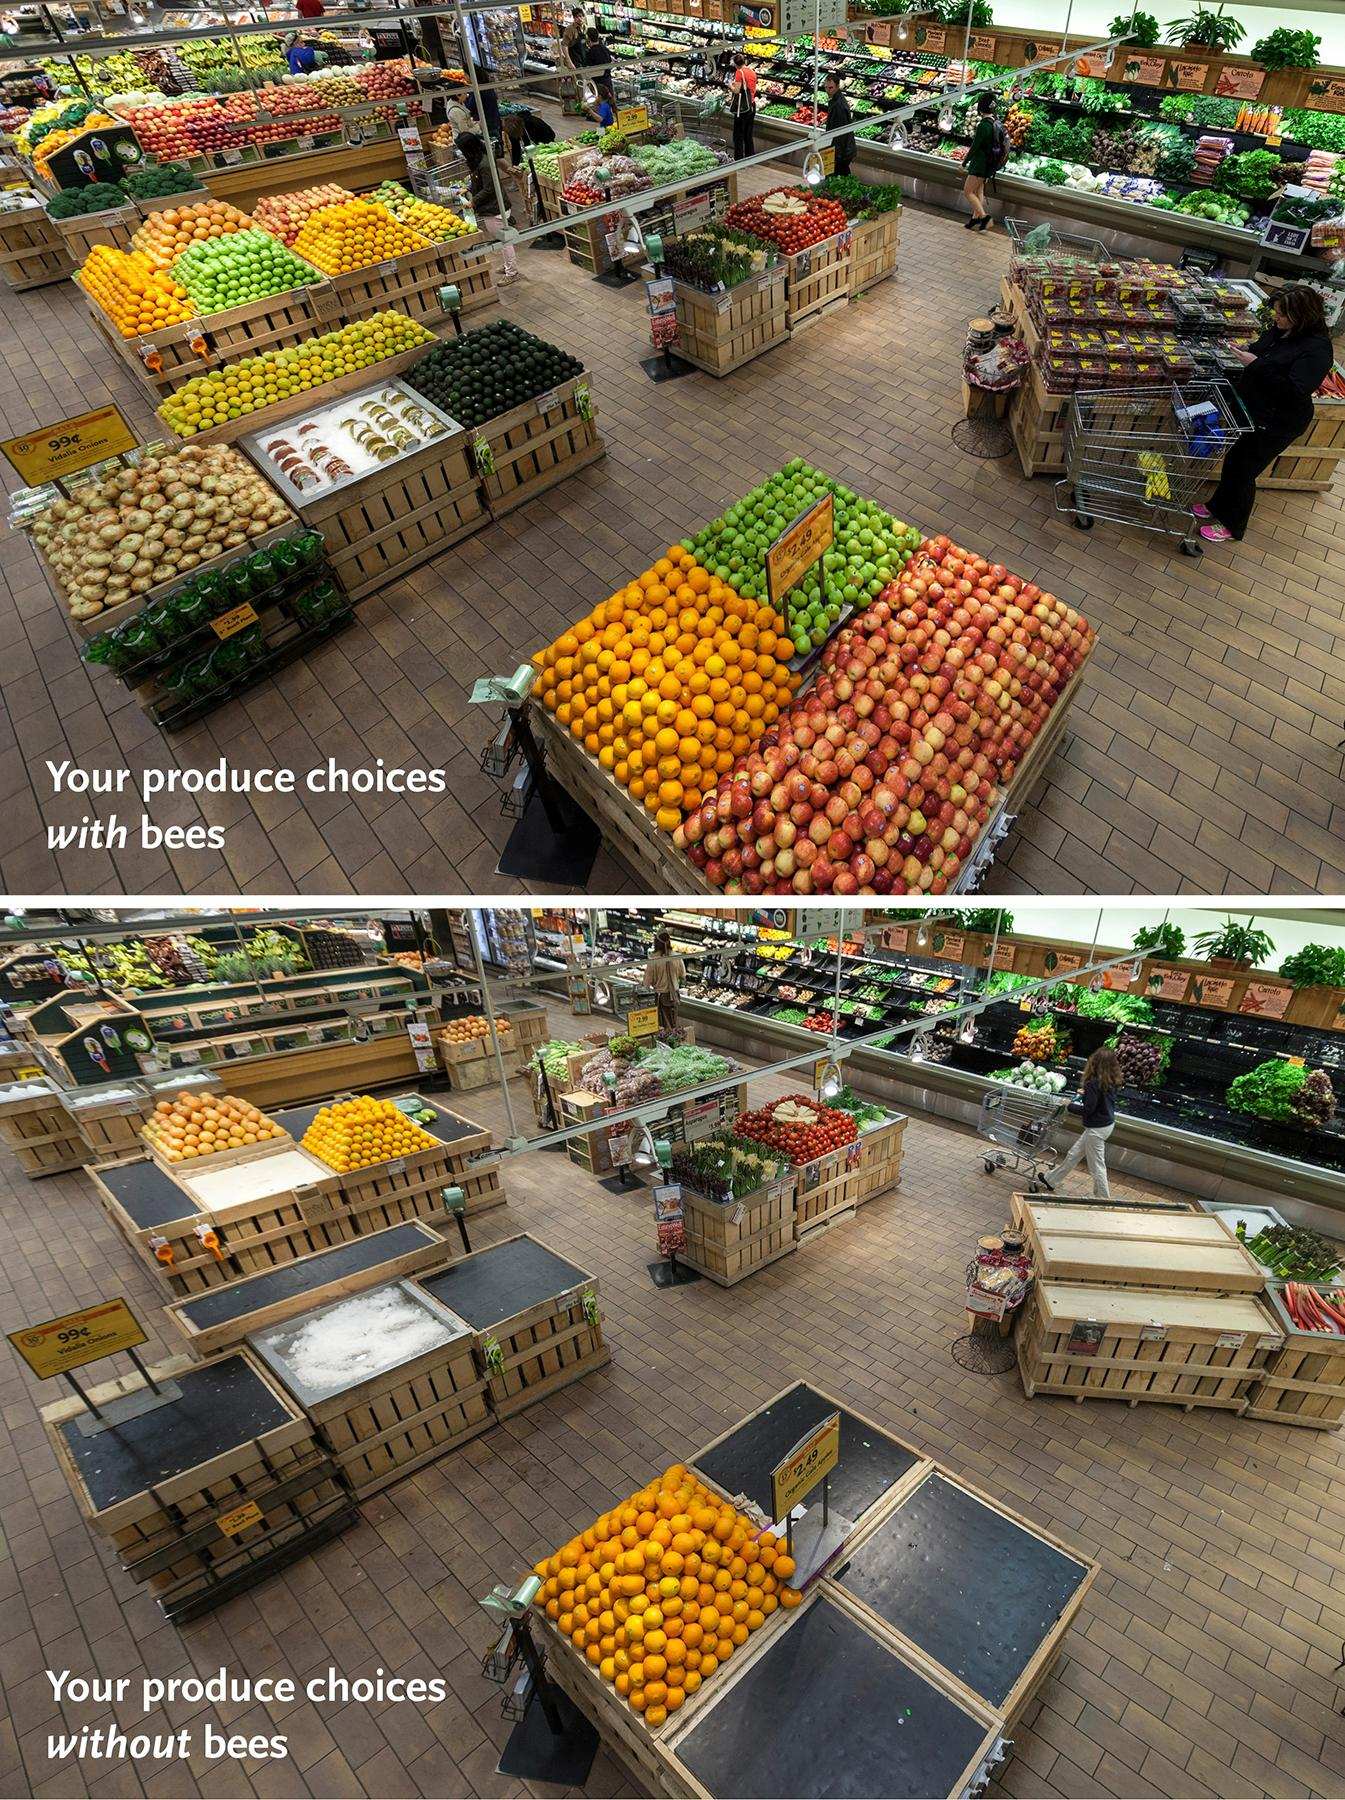 Whole Foods grocery store without bees